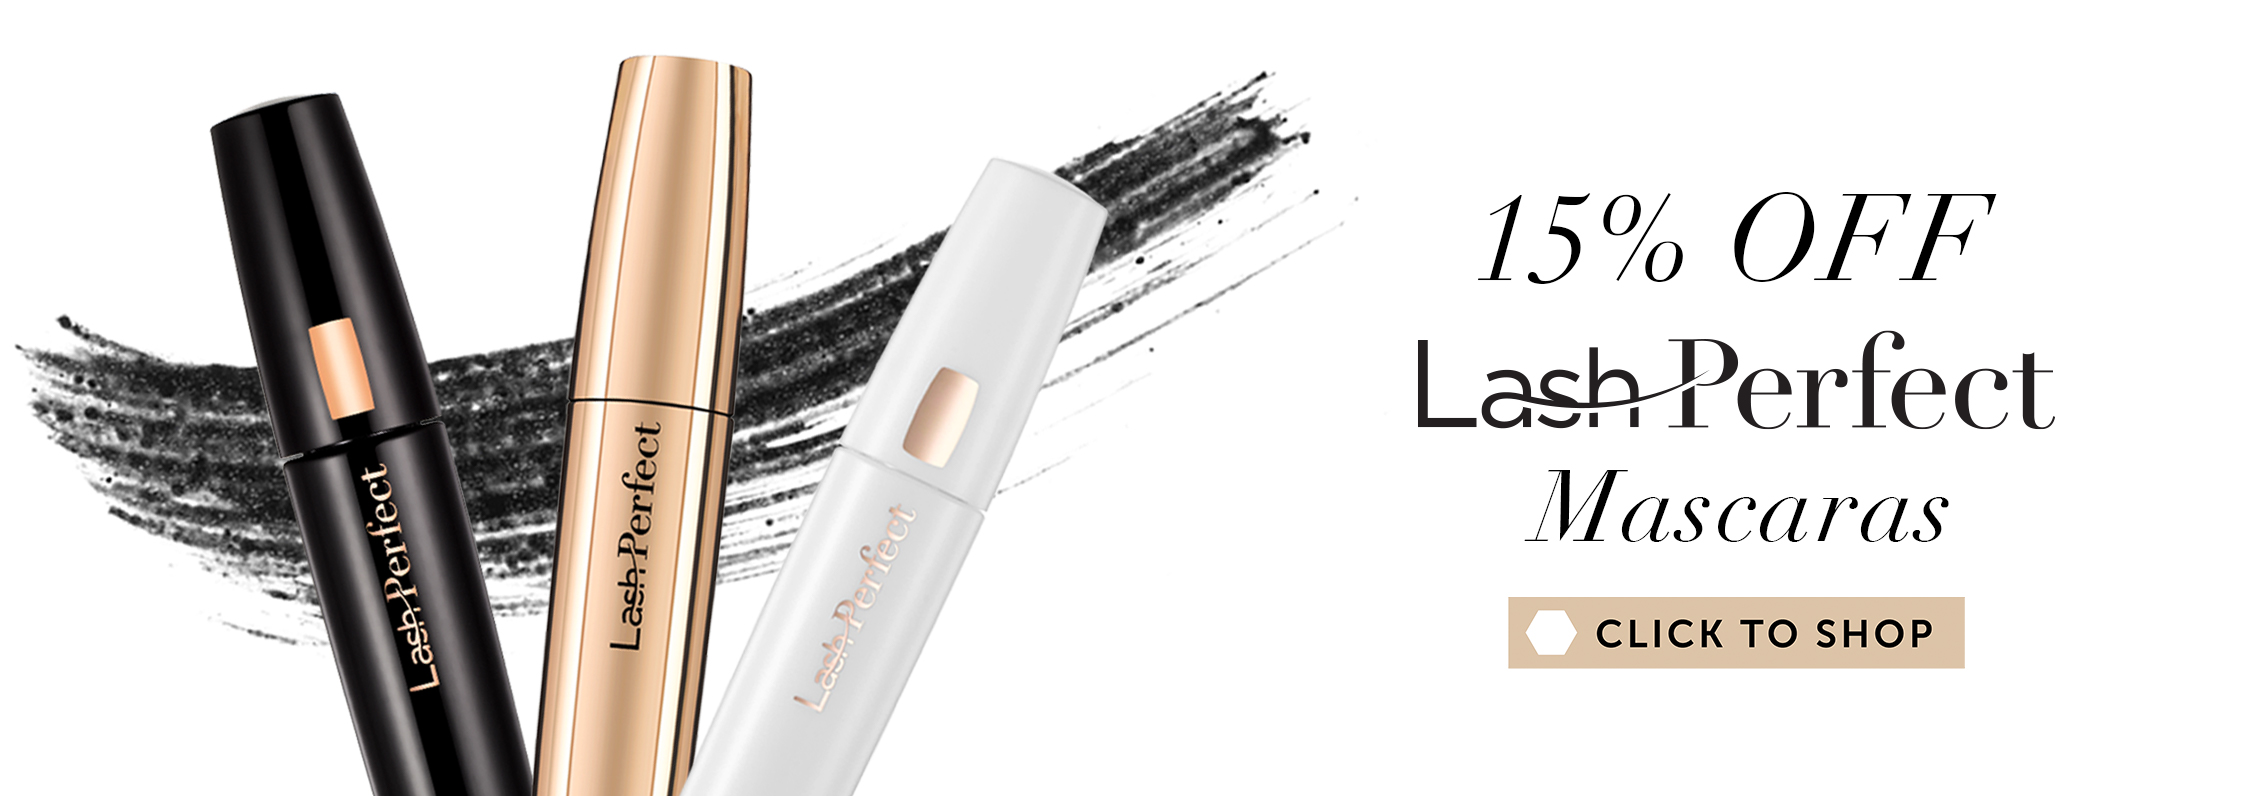 15% off Lash Perfect Mascaras